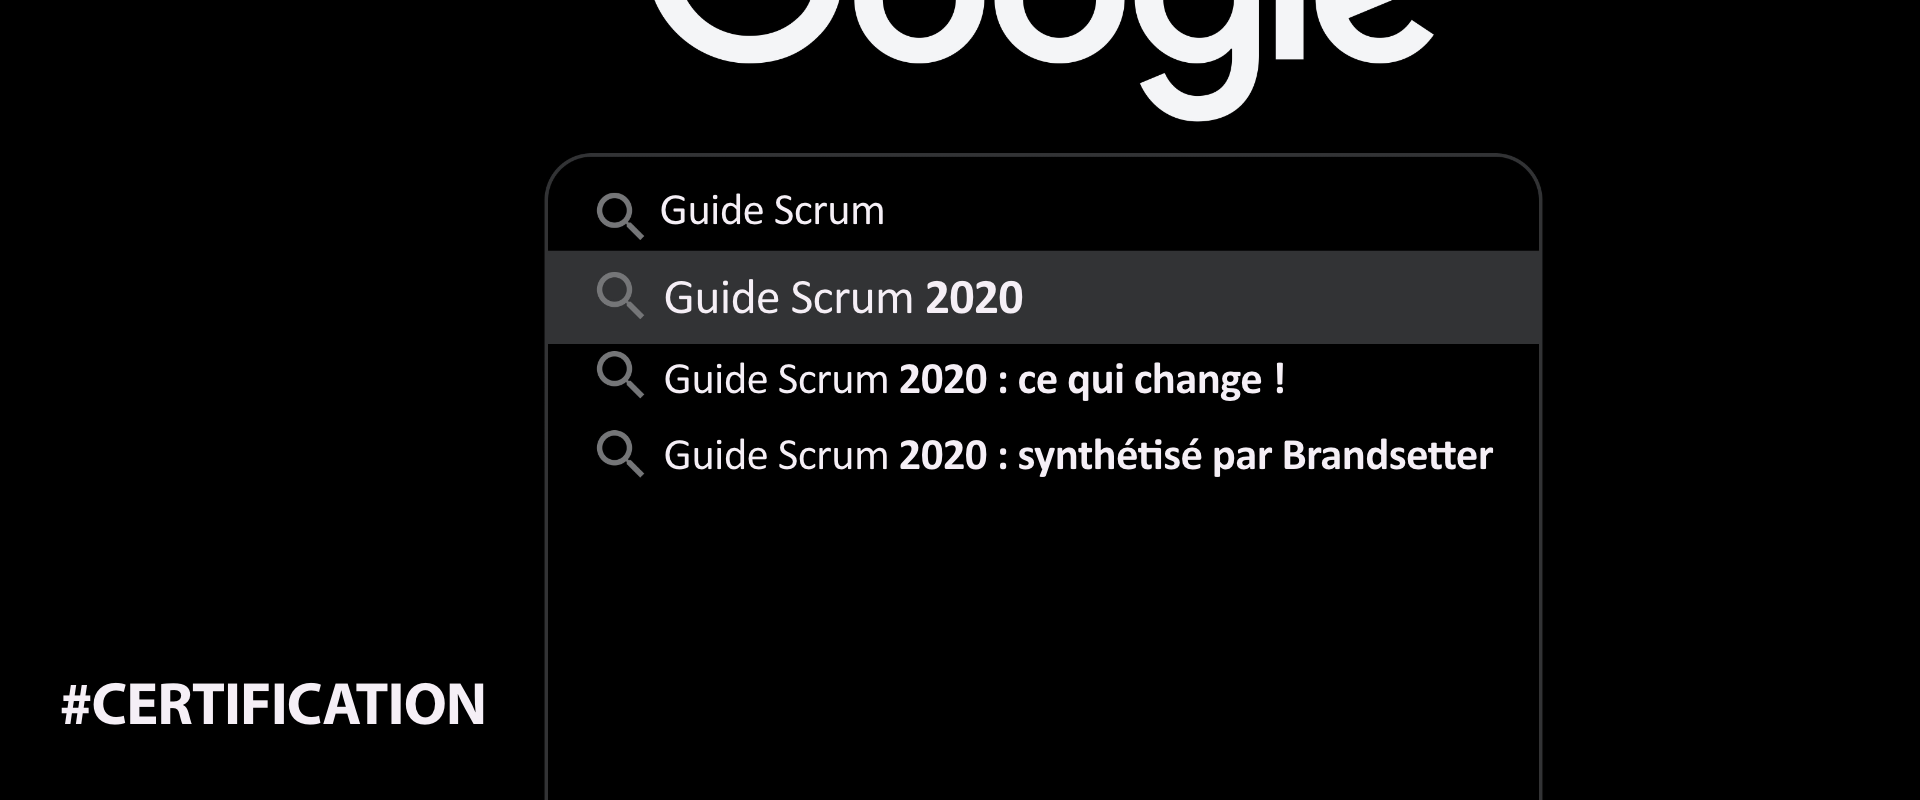 guide scrum 2020 changements